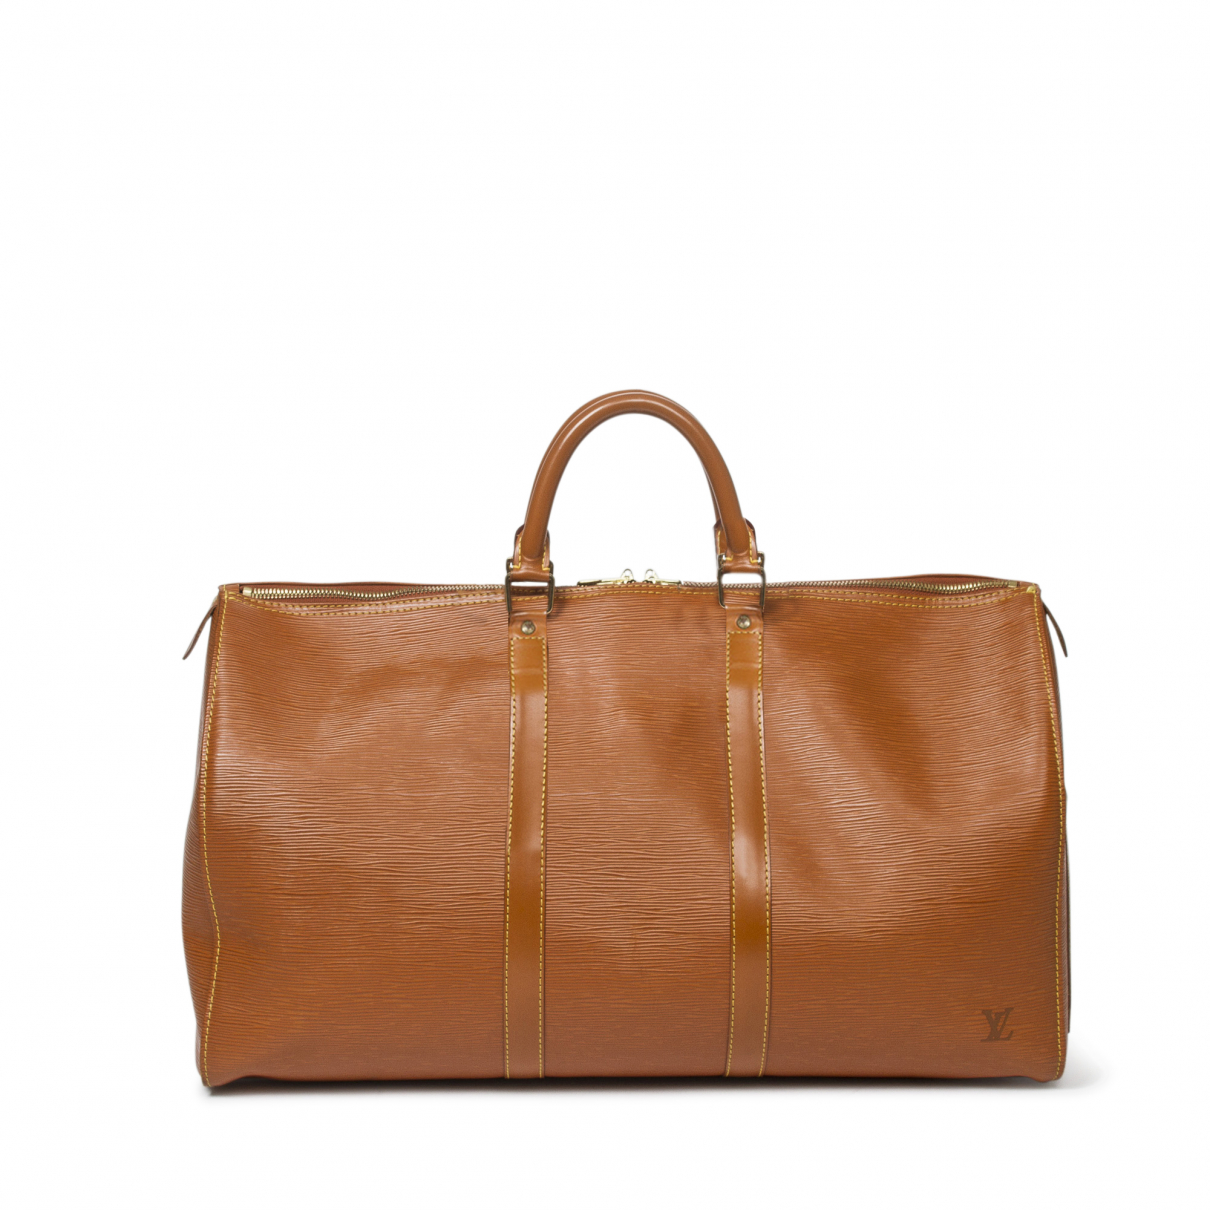 Louis Vuitton \N Gold Leather Travel bag for Women \N